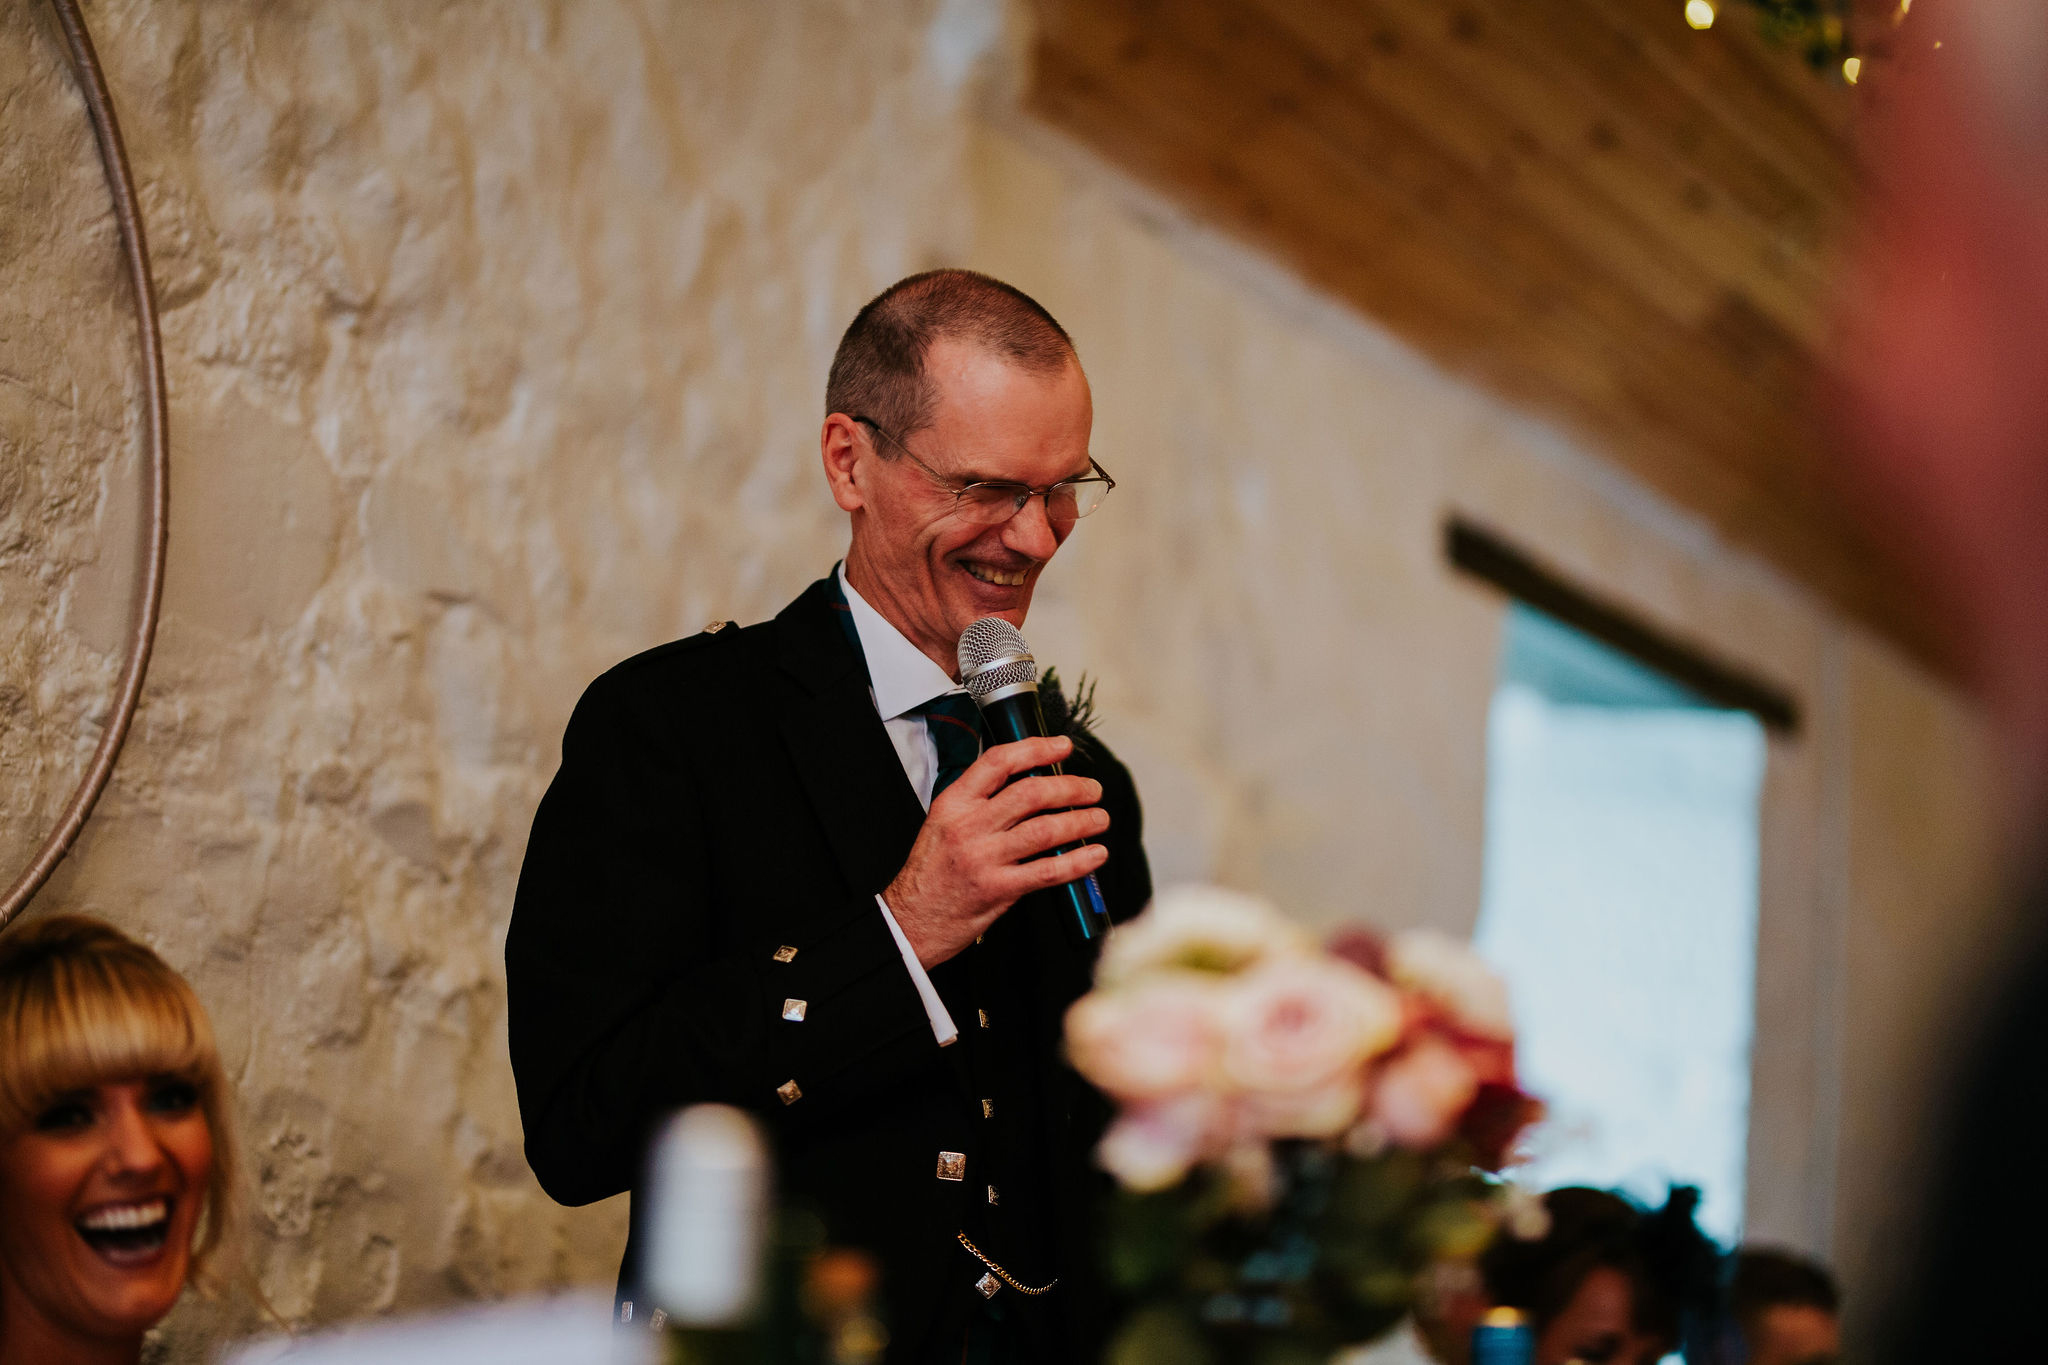 Dalduff-Farm-wedding-photographer  (82).jpg